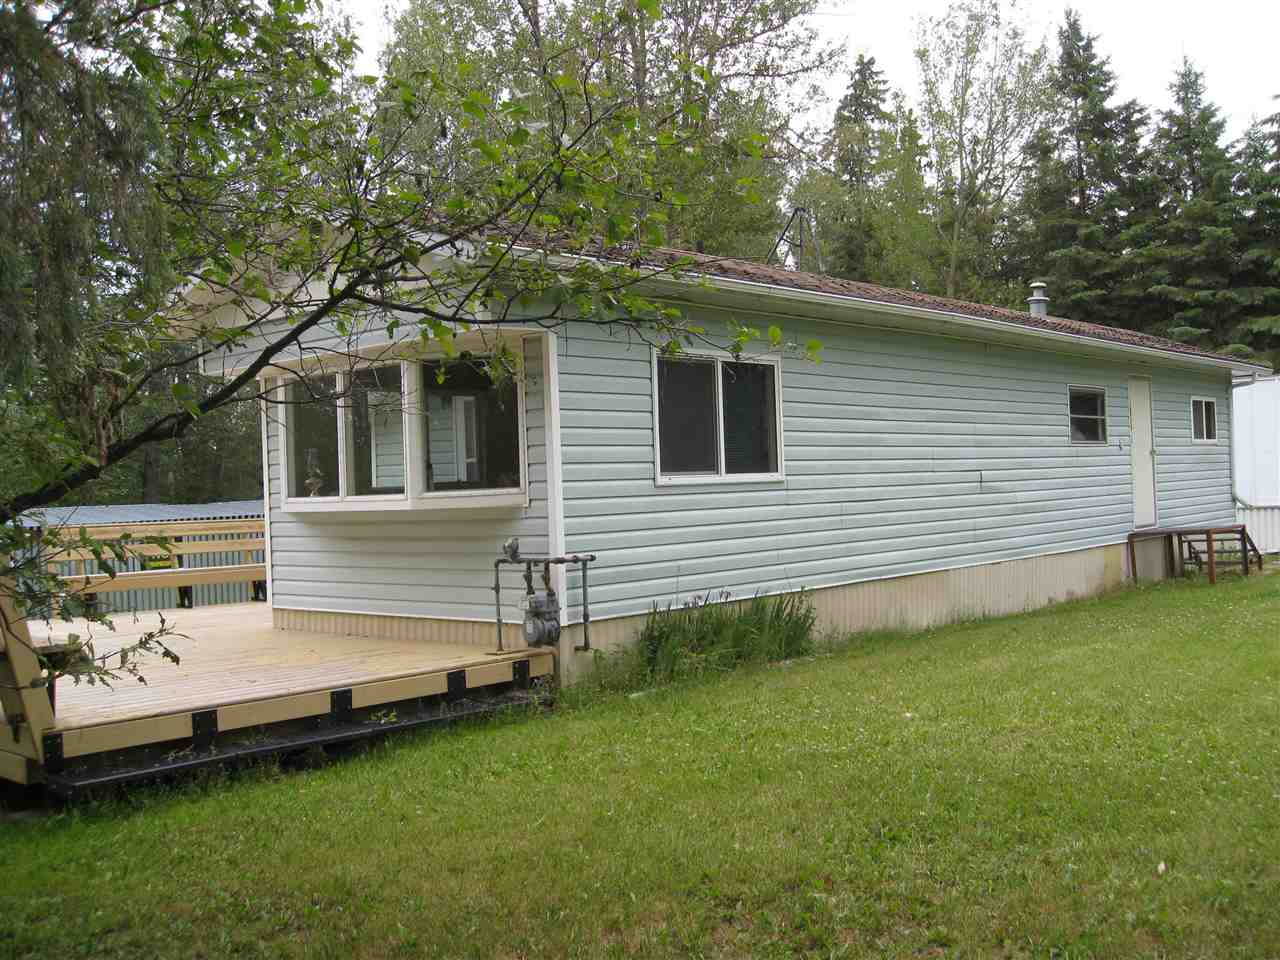 "The  2 Bdrm older 680 sq. Ft.  Single-Wide Mobile is located Lake Front at Lessard Lake. This nice and neat ""Cabin"" is perfect for those Weekend Getaways. Located on a Park Like setting, this 1 Acre parcel is looking for New Owners. Has several out buildings including a Sea Can for what ever you need to store. Just add Water and Septic and you could make this a Full-Time residence or leave it just as is . This property is very nice & Private nestled in amongst the trees. Has Power to the buildings also and Natural Gas to the Cabin. Come have a look and get your  Lake Front Cabin in the woods!!!"